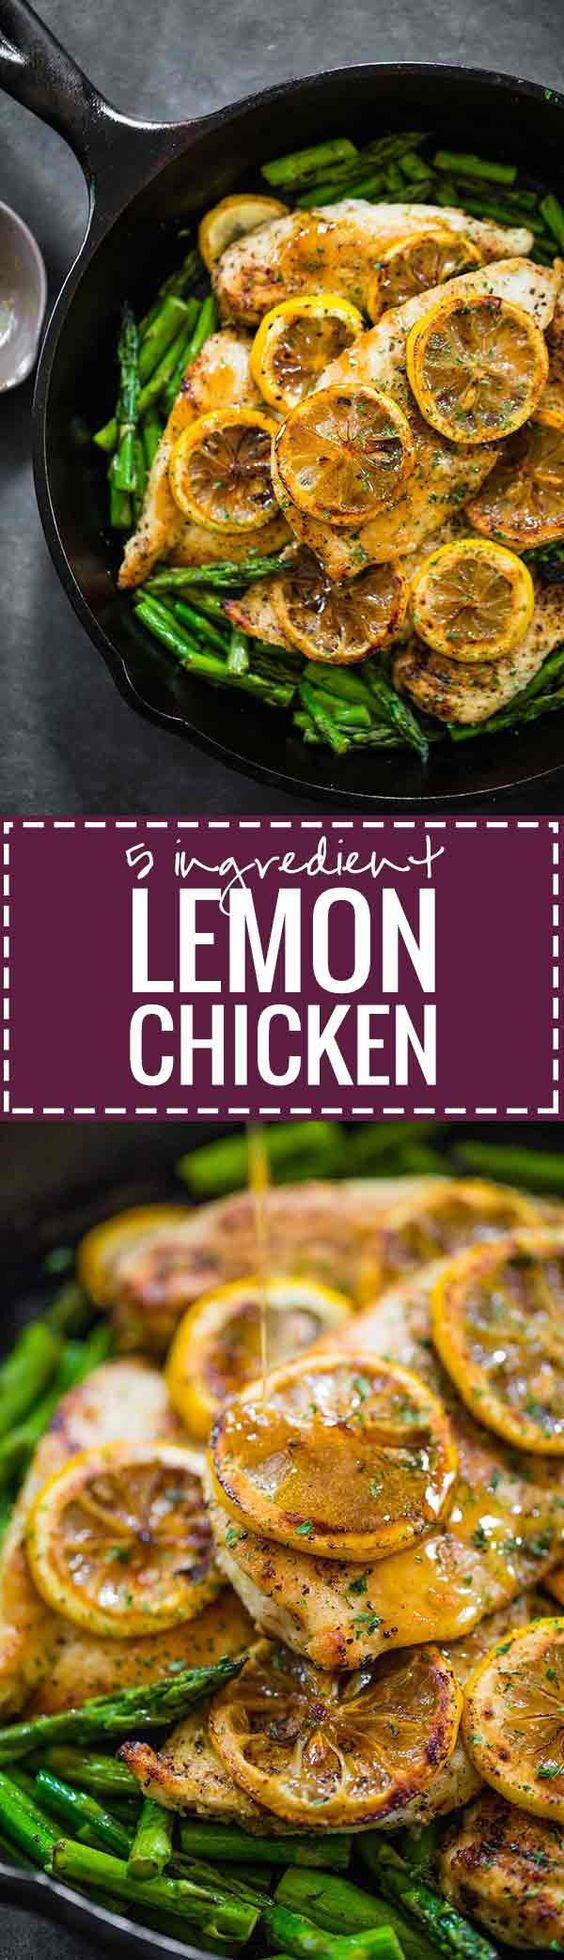 5 Ingredient Lemon Chicken with Asparagus  a bright fresh healthy recipe that's ready in 20 minutes! 300 calories.